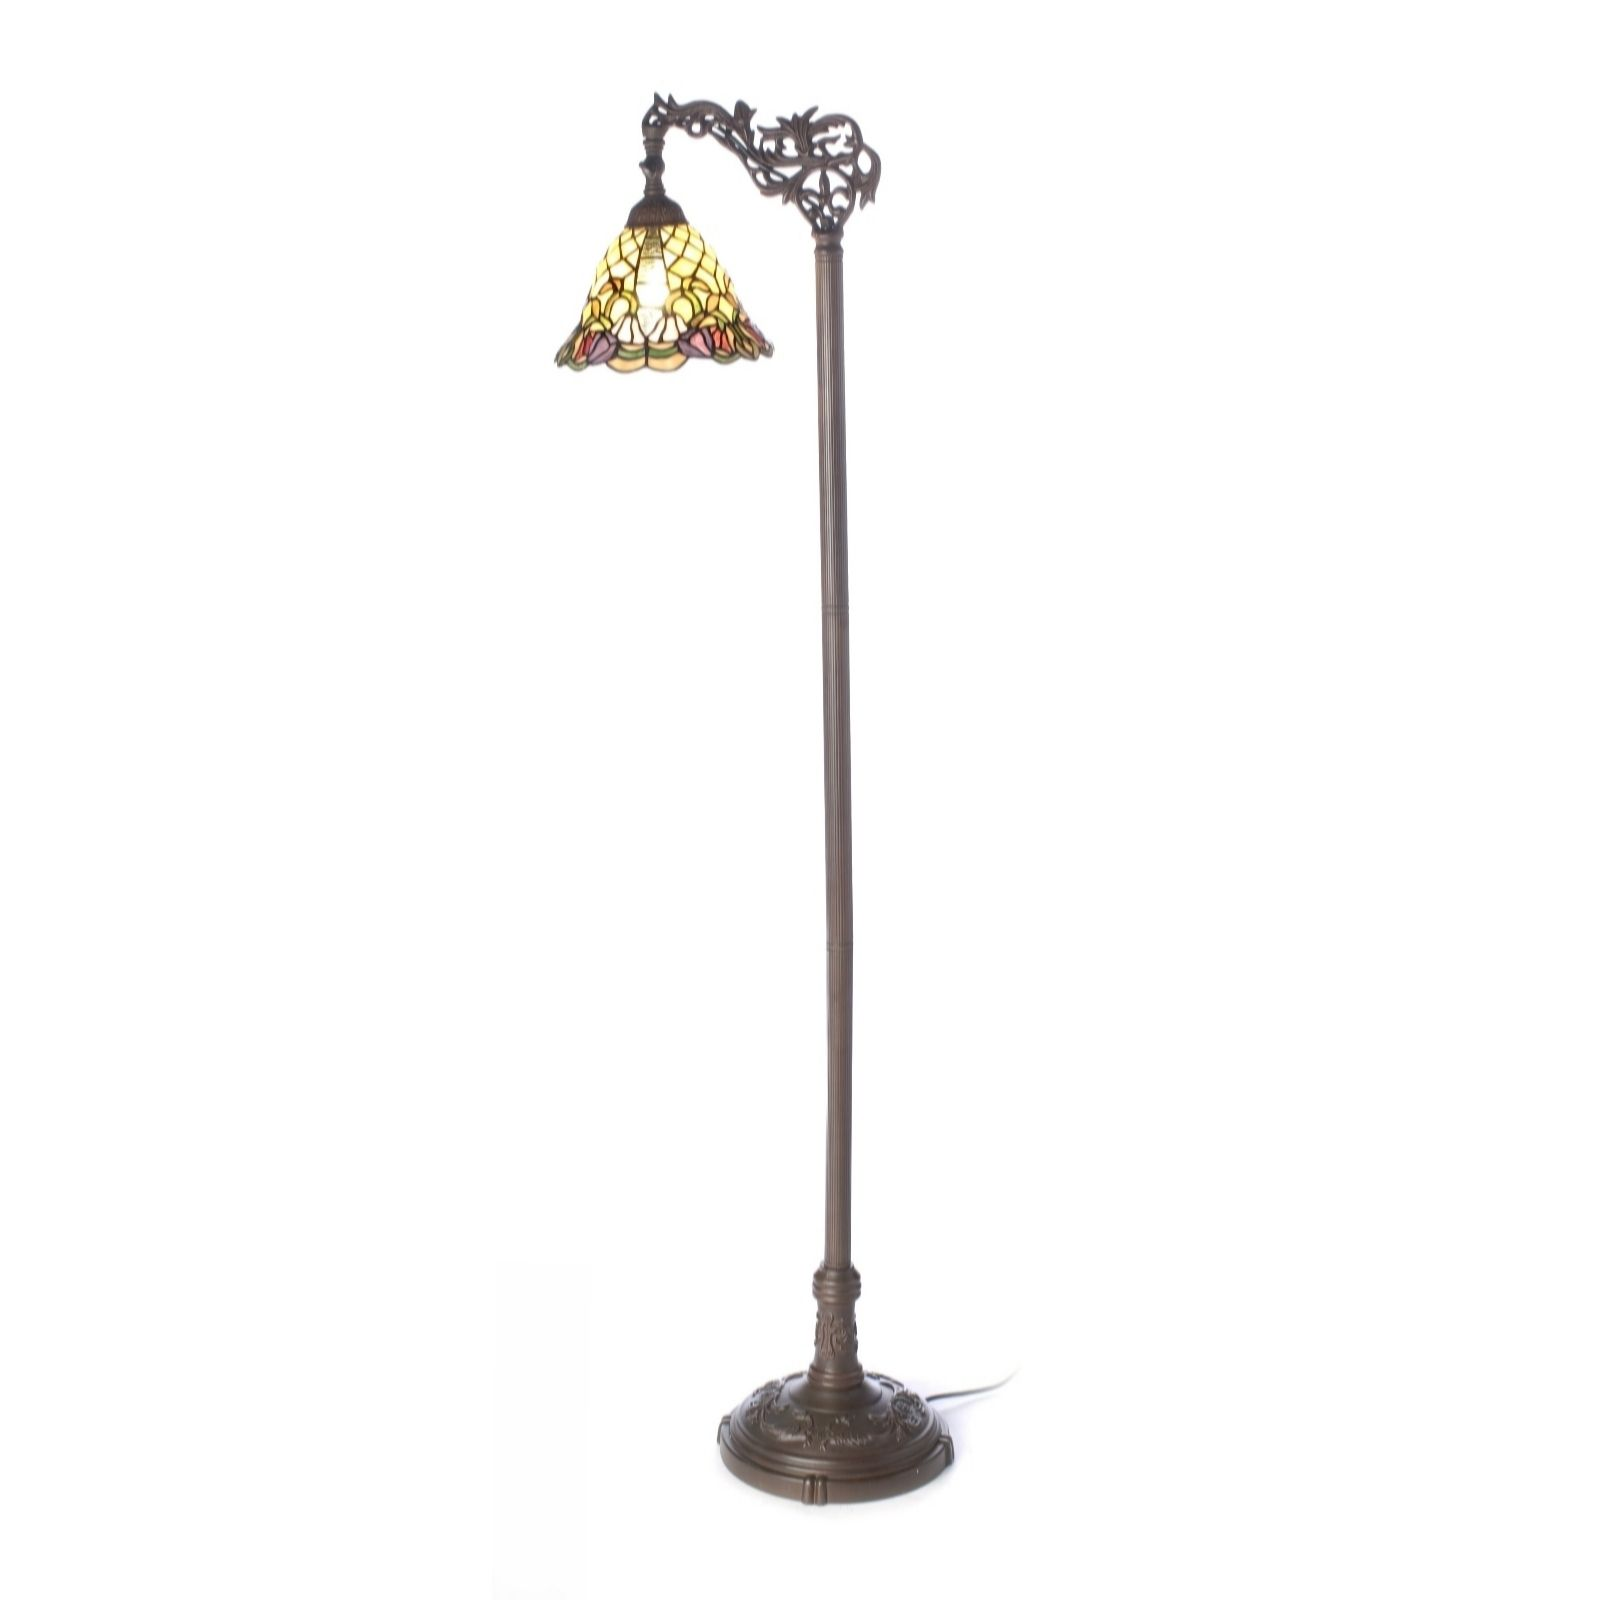 Charming Tiffany Style Handcrafted Floral Trumpet Floor Lamp   QVC UK